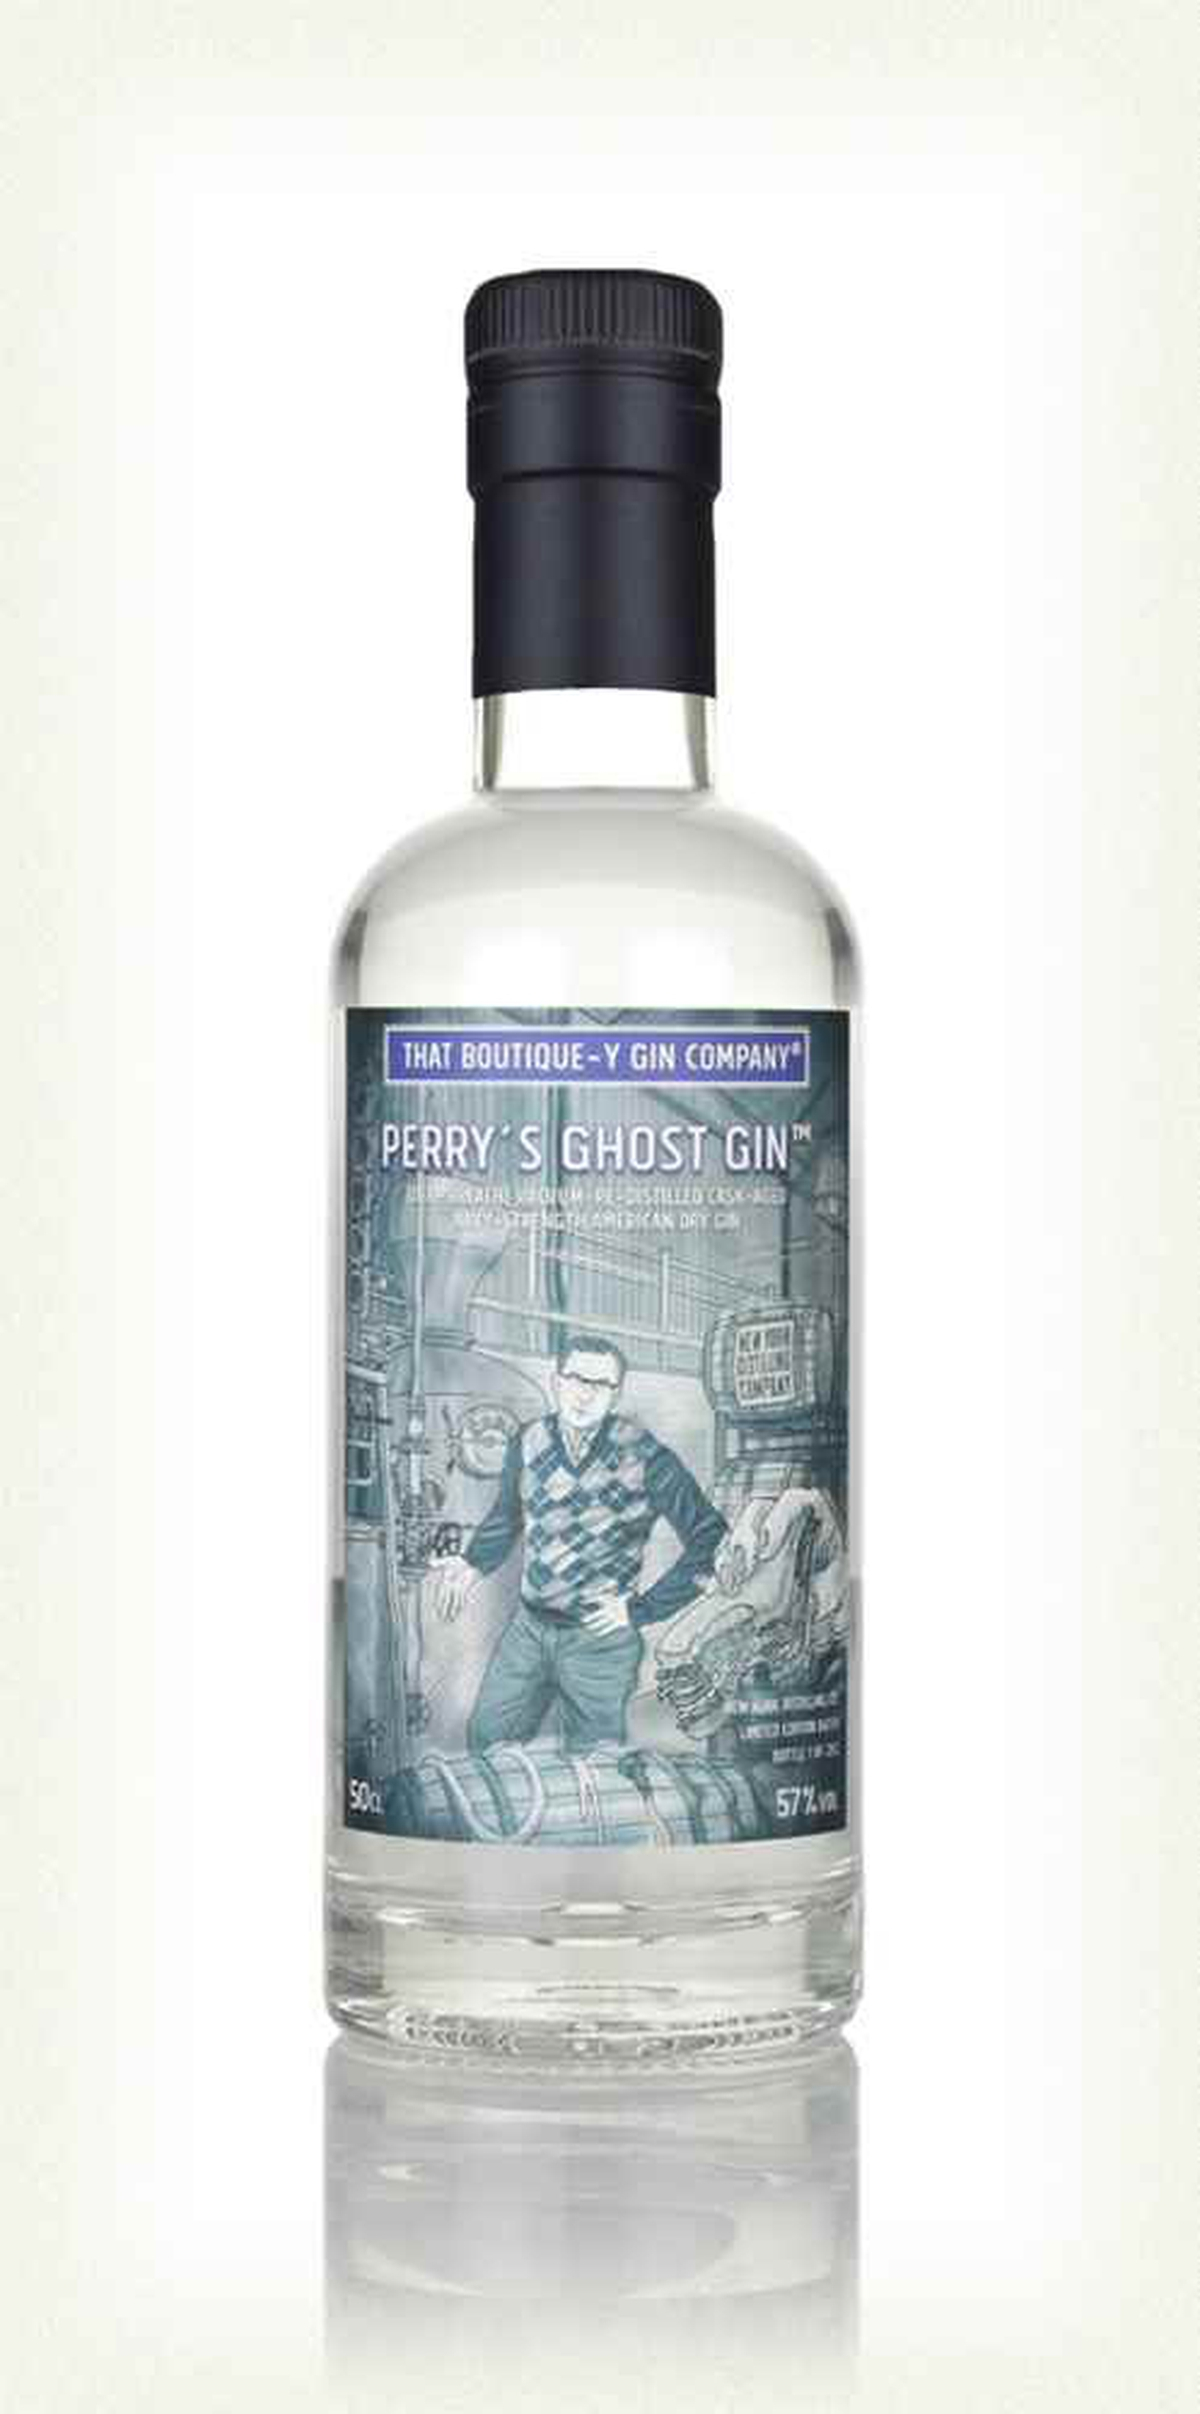 Perry's Ghost Gin